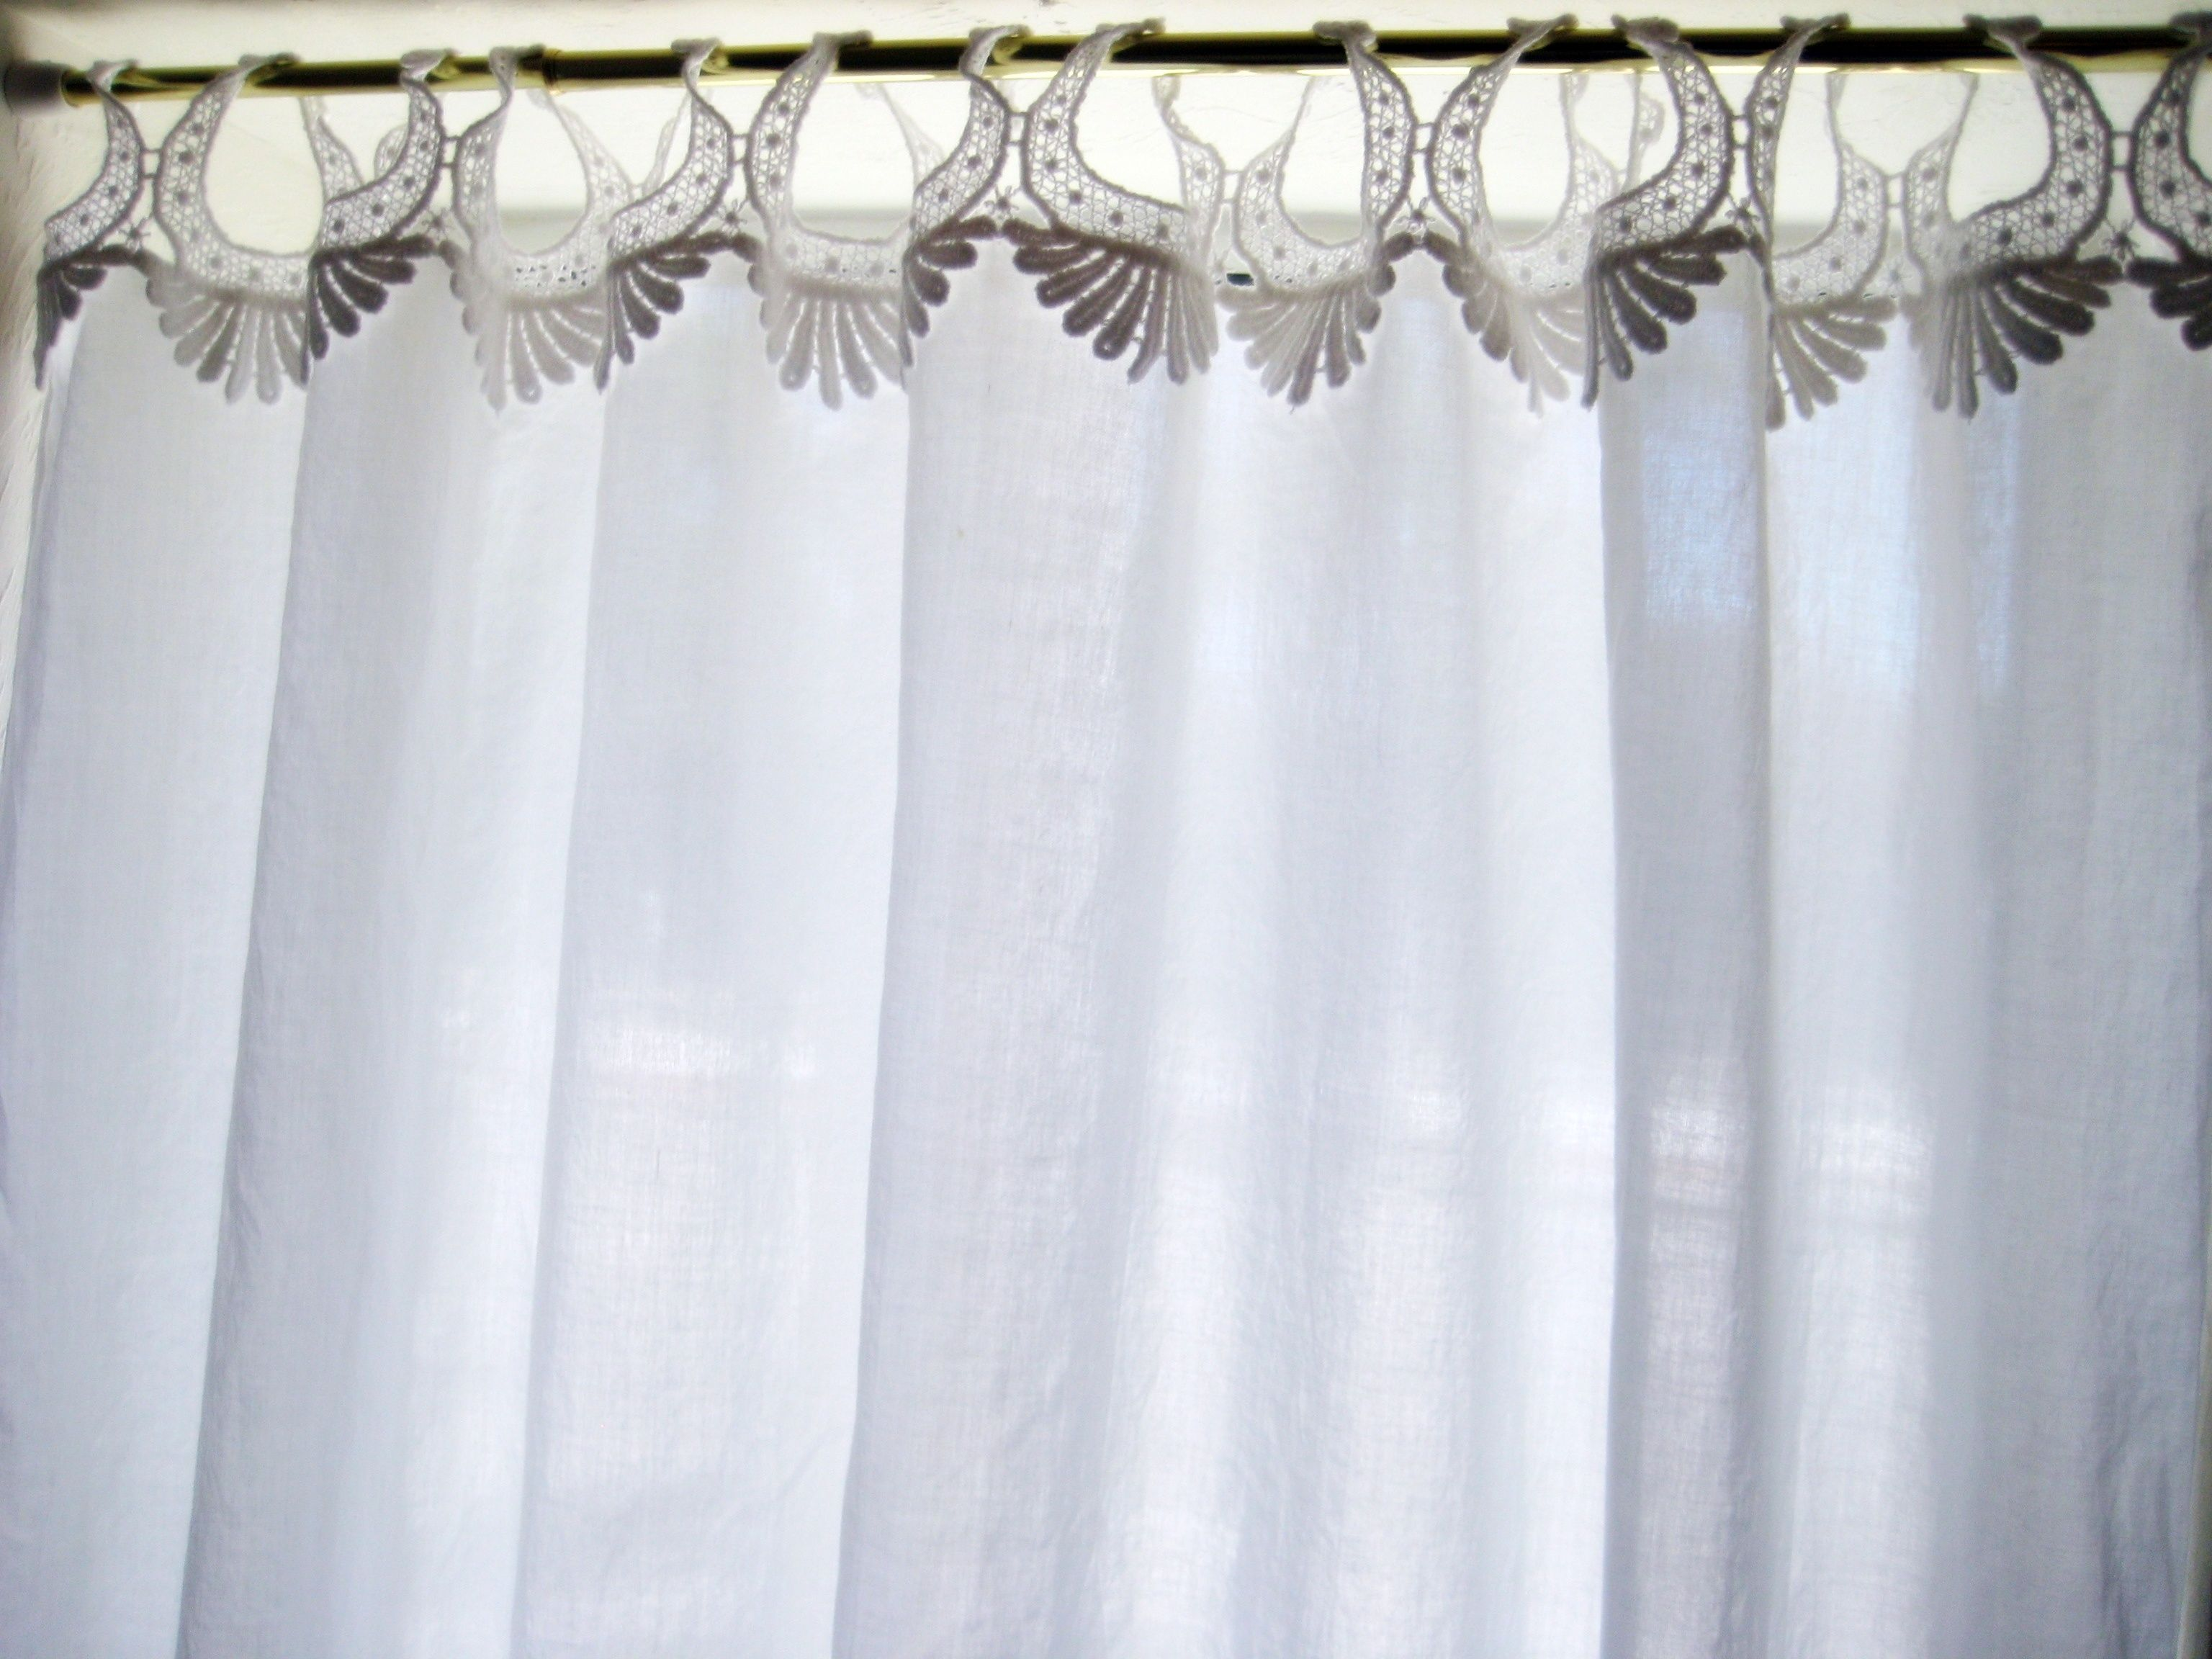 The exact white curtains you've been looking for...  $49.00 each panel free shipping